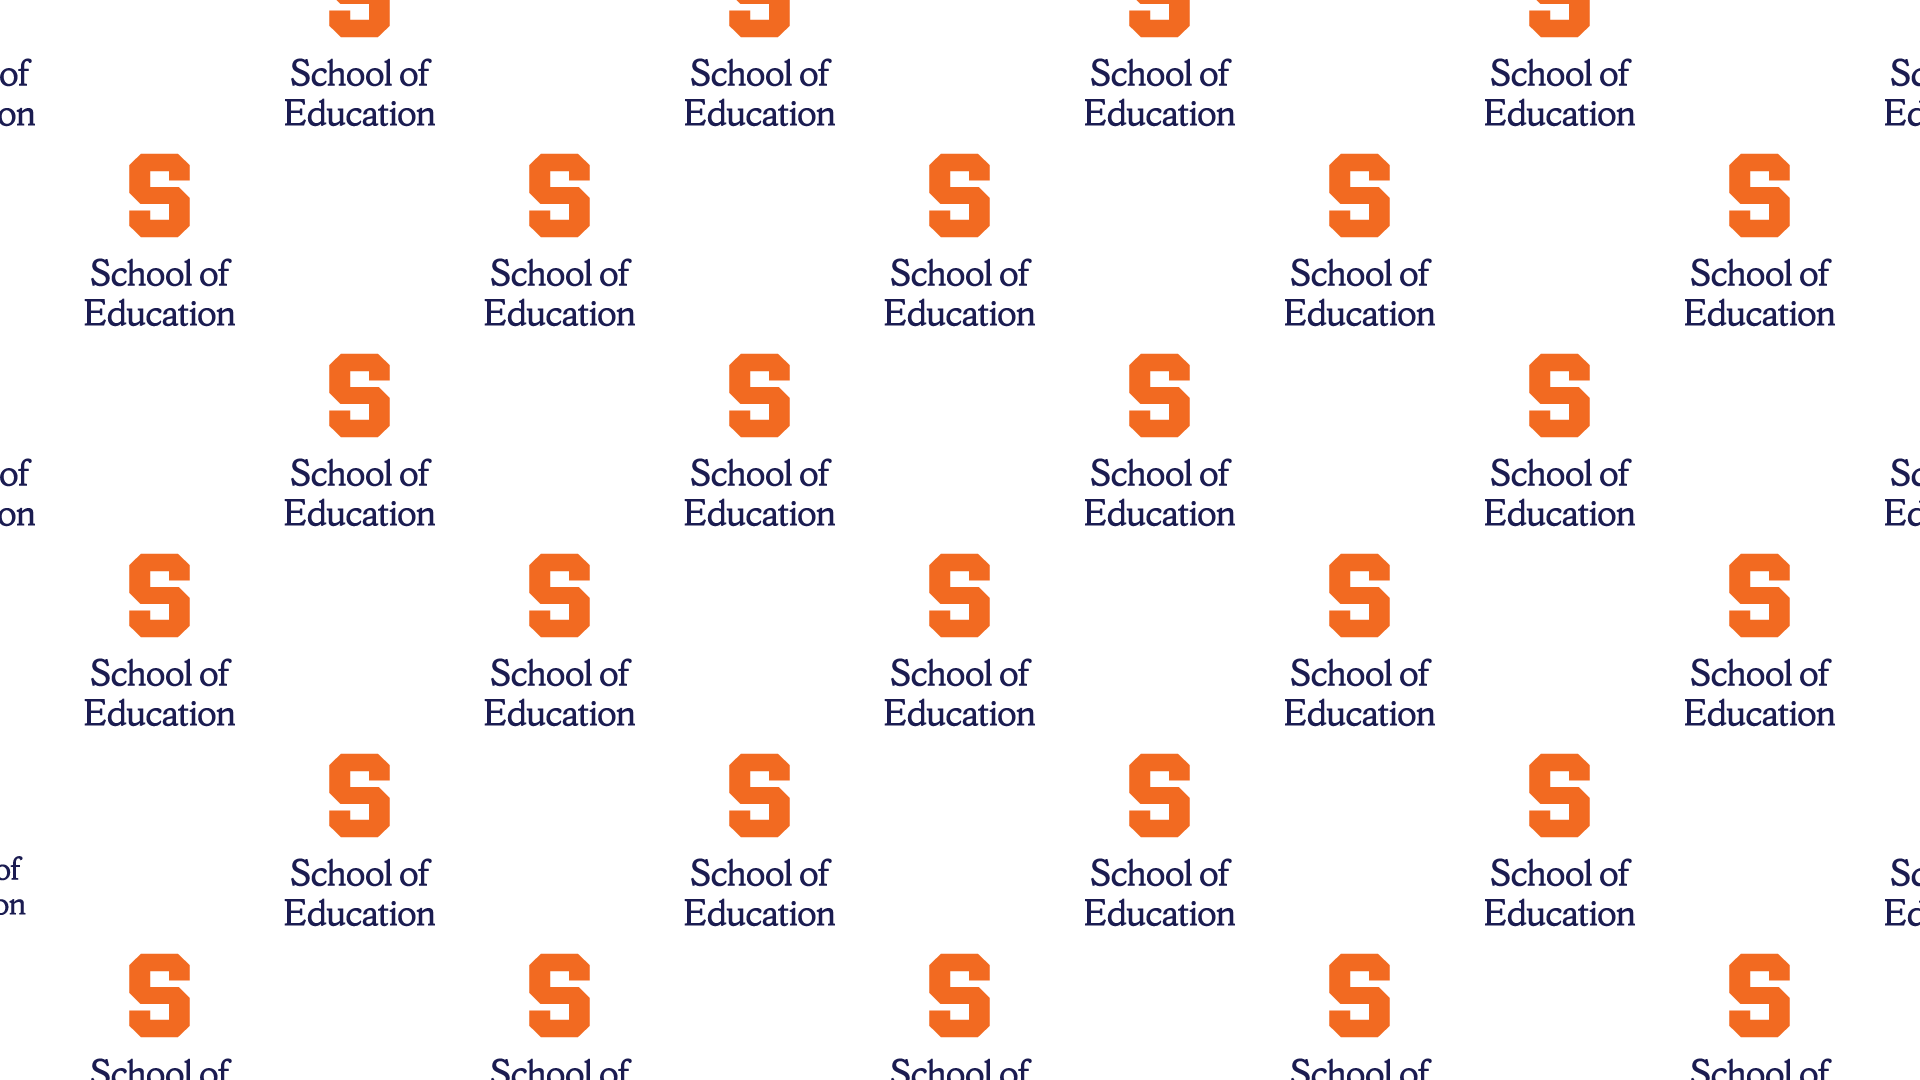 repeated school of education logo on a white background